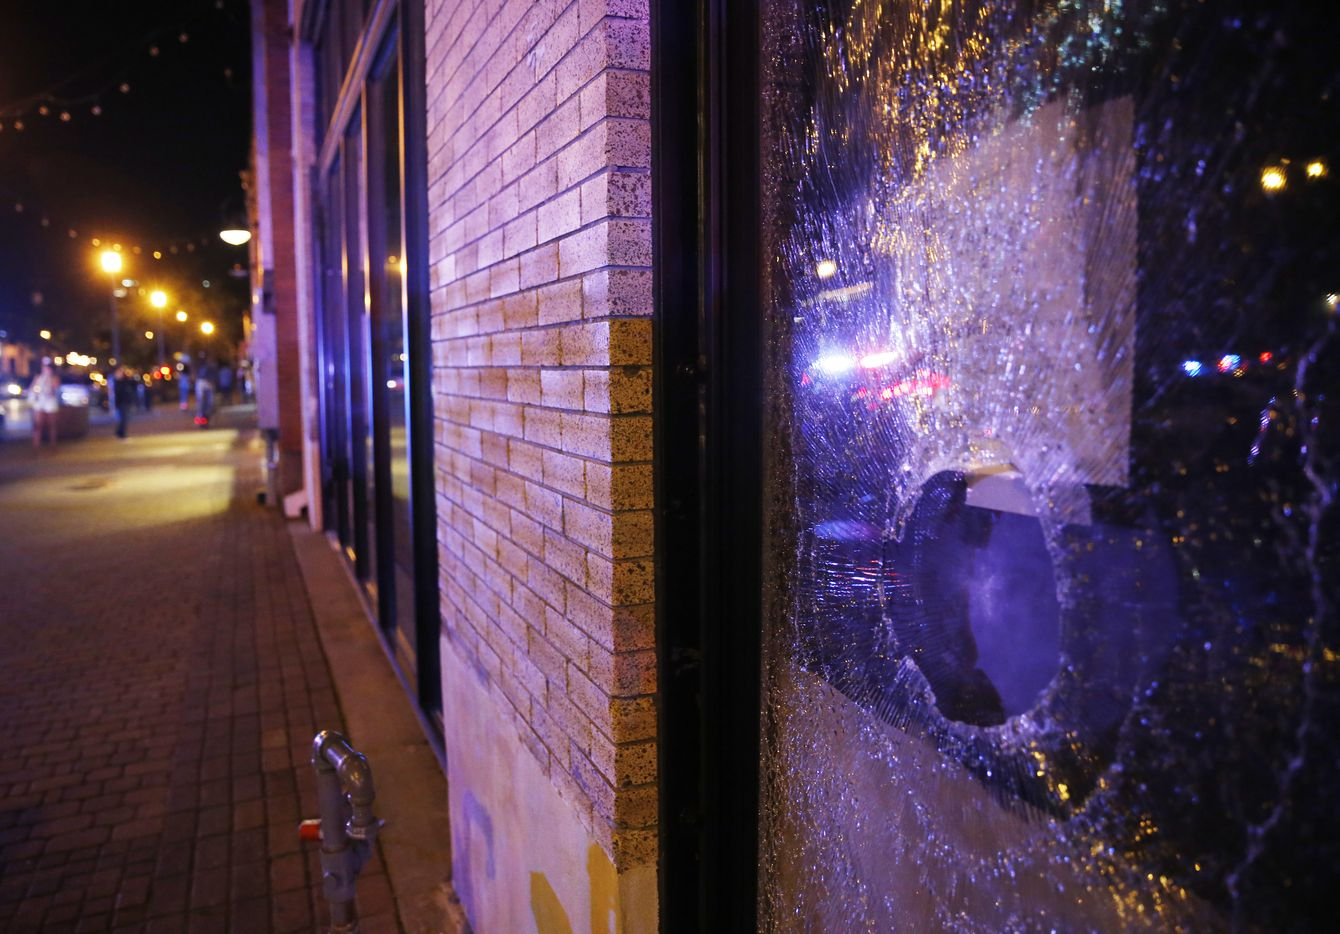 Busted window of a business along Main Street in Deep Ellum in downtown Dallas, on Friday, May 29, 2020. George Floyd died in police custody in Minneapolis on May 25. Minneapolis police officer Derek Chauvin, who had his knee on the neck of Floyd for at least five minutes has been charged with murder and manslaughter earlier today.